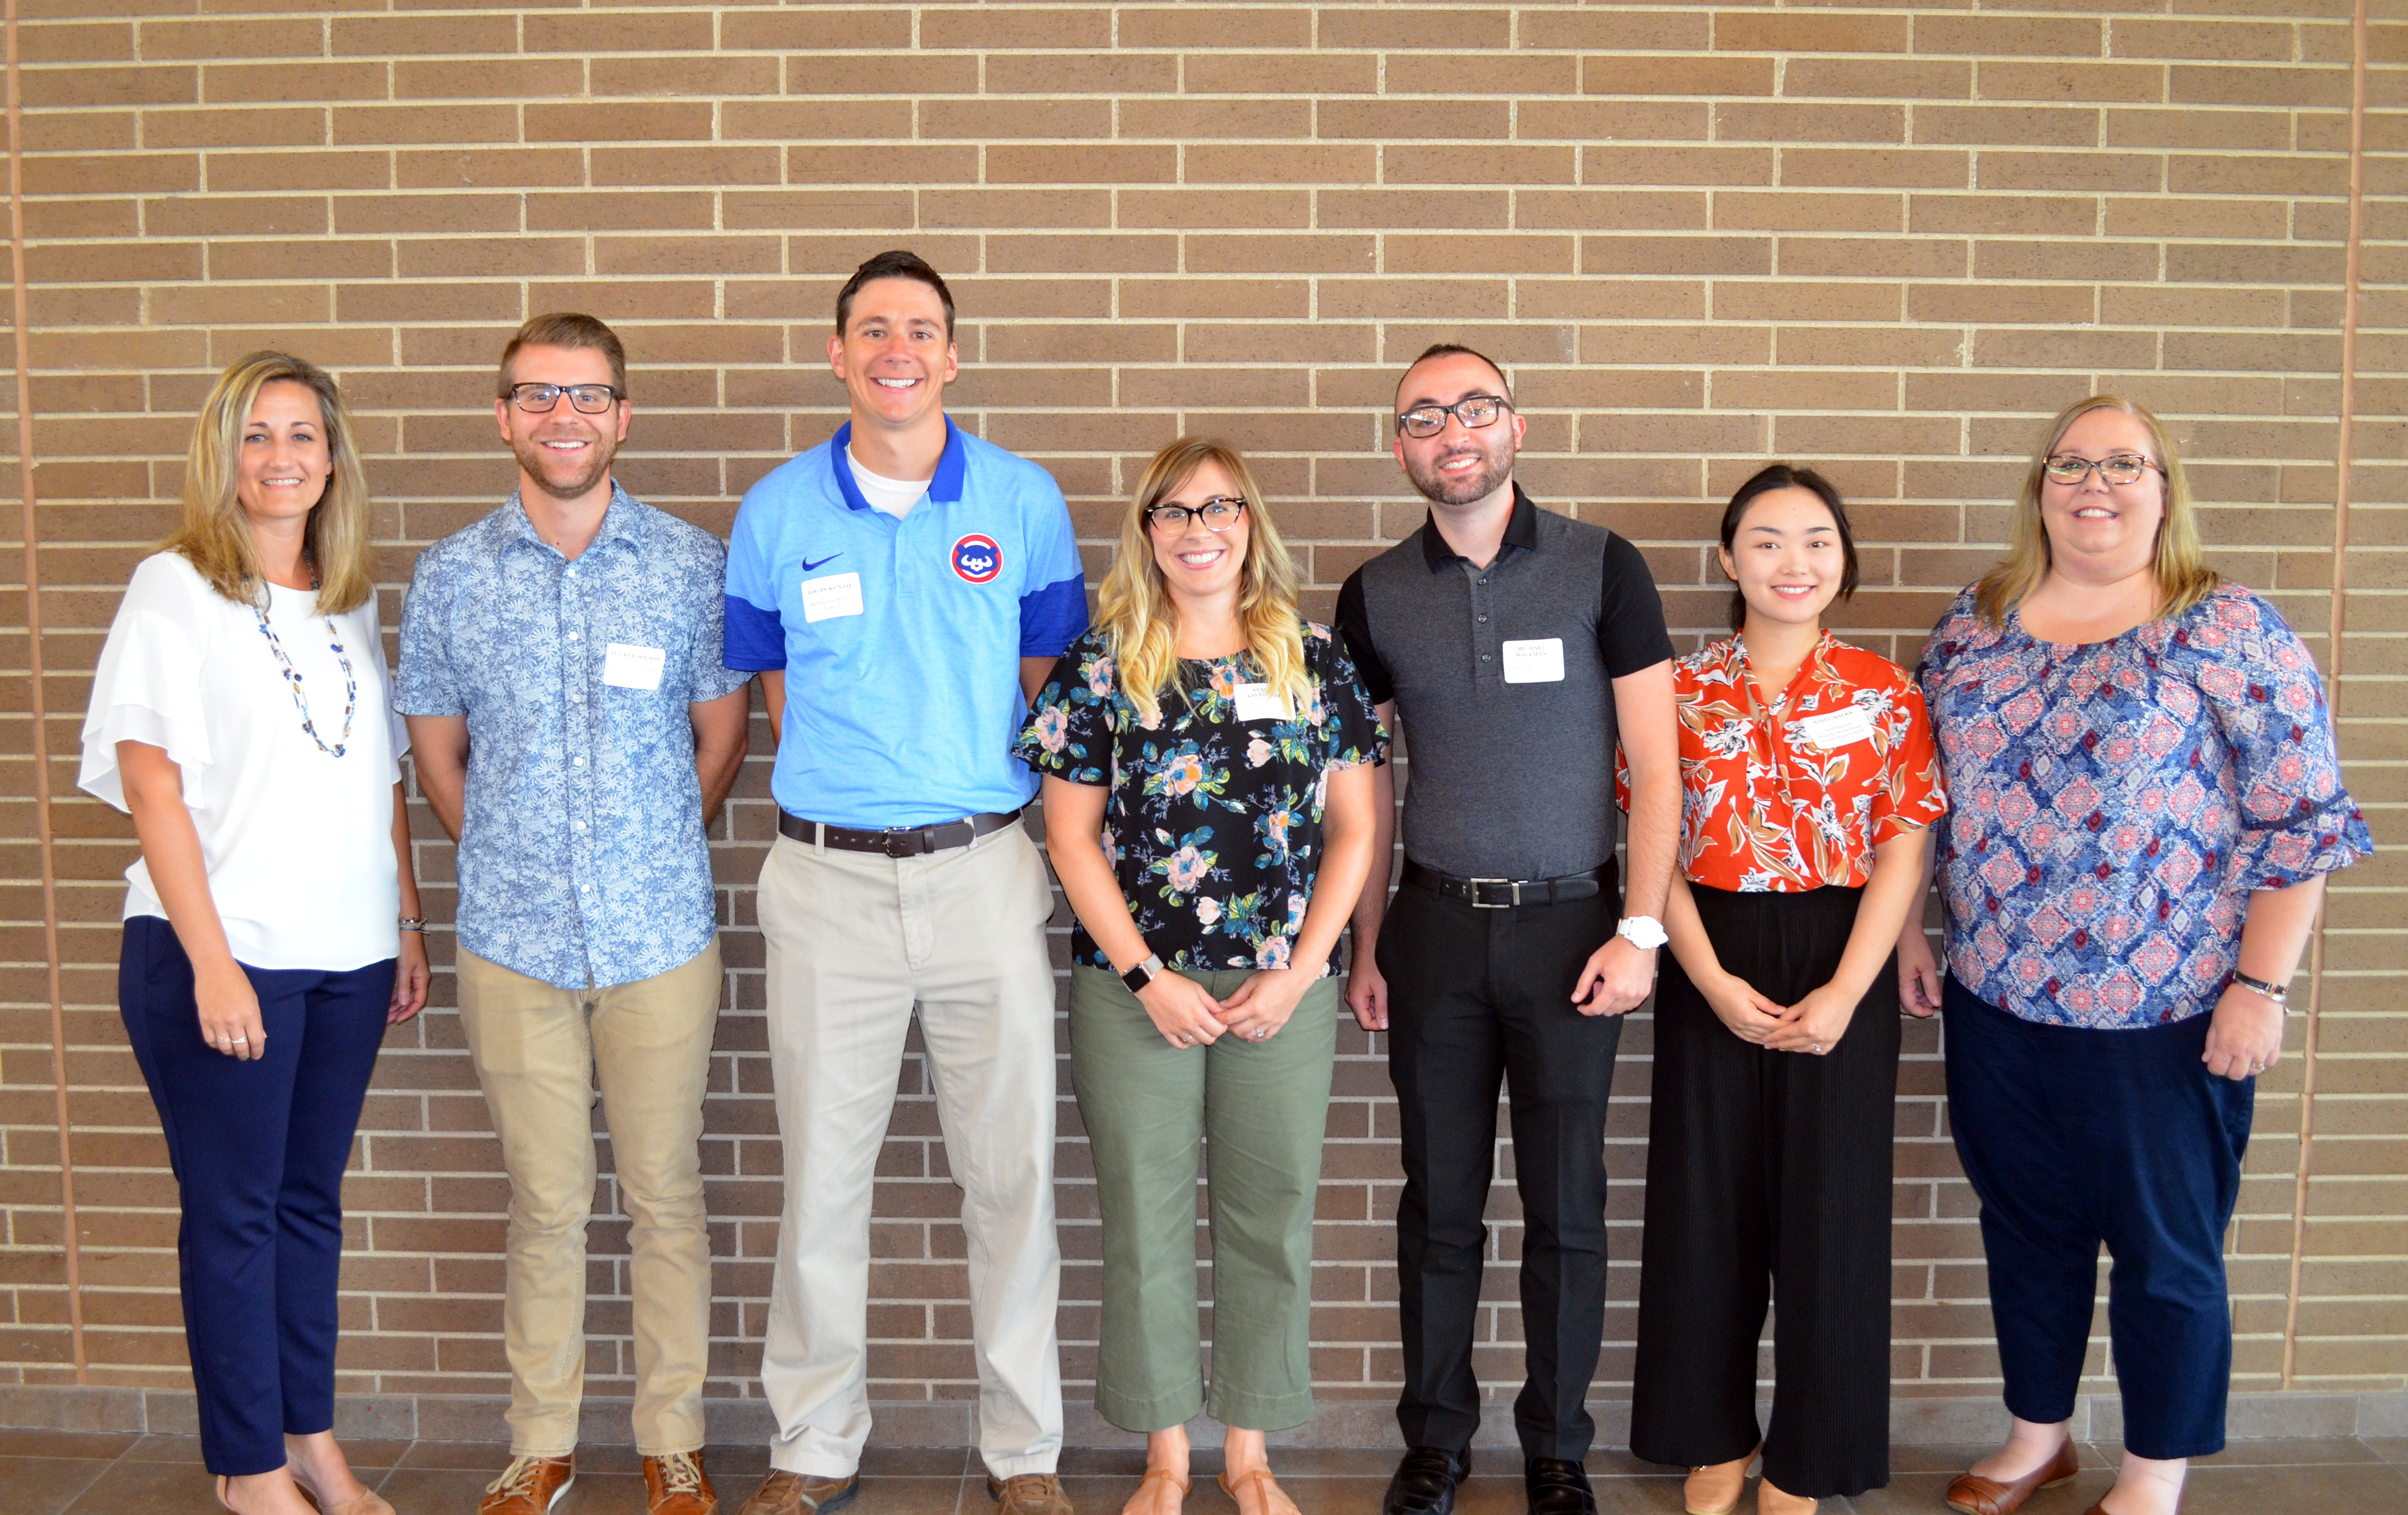 New staff at NWMS